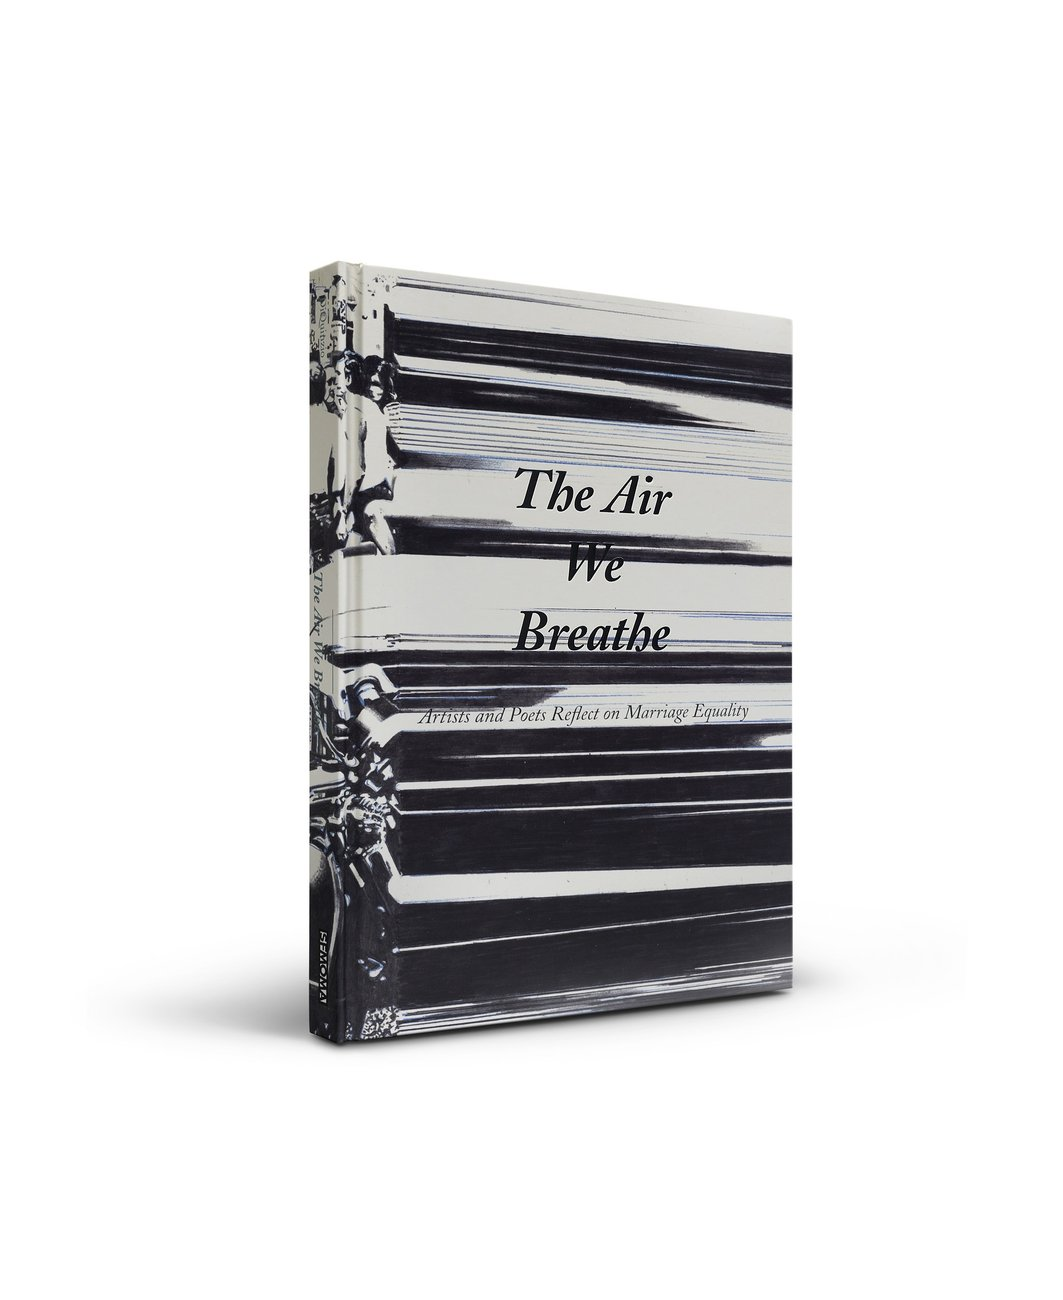 The Air We Breathe publication cover